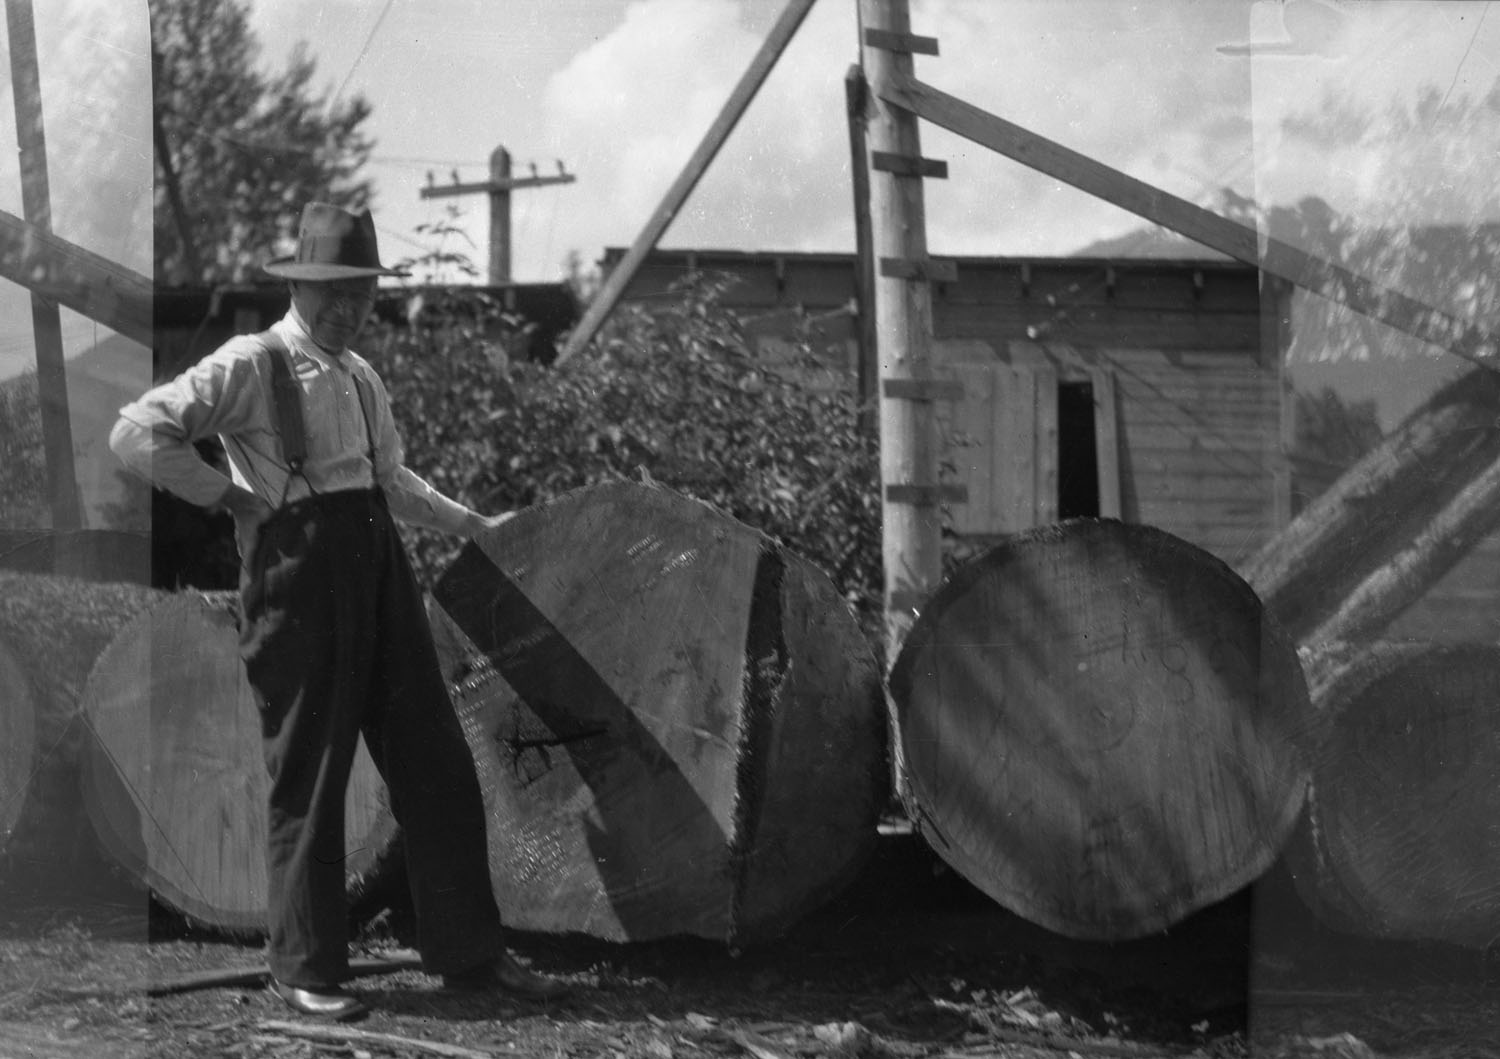 Dick Sawyer with Logs [DN-462]